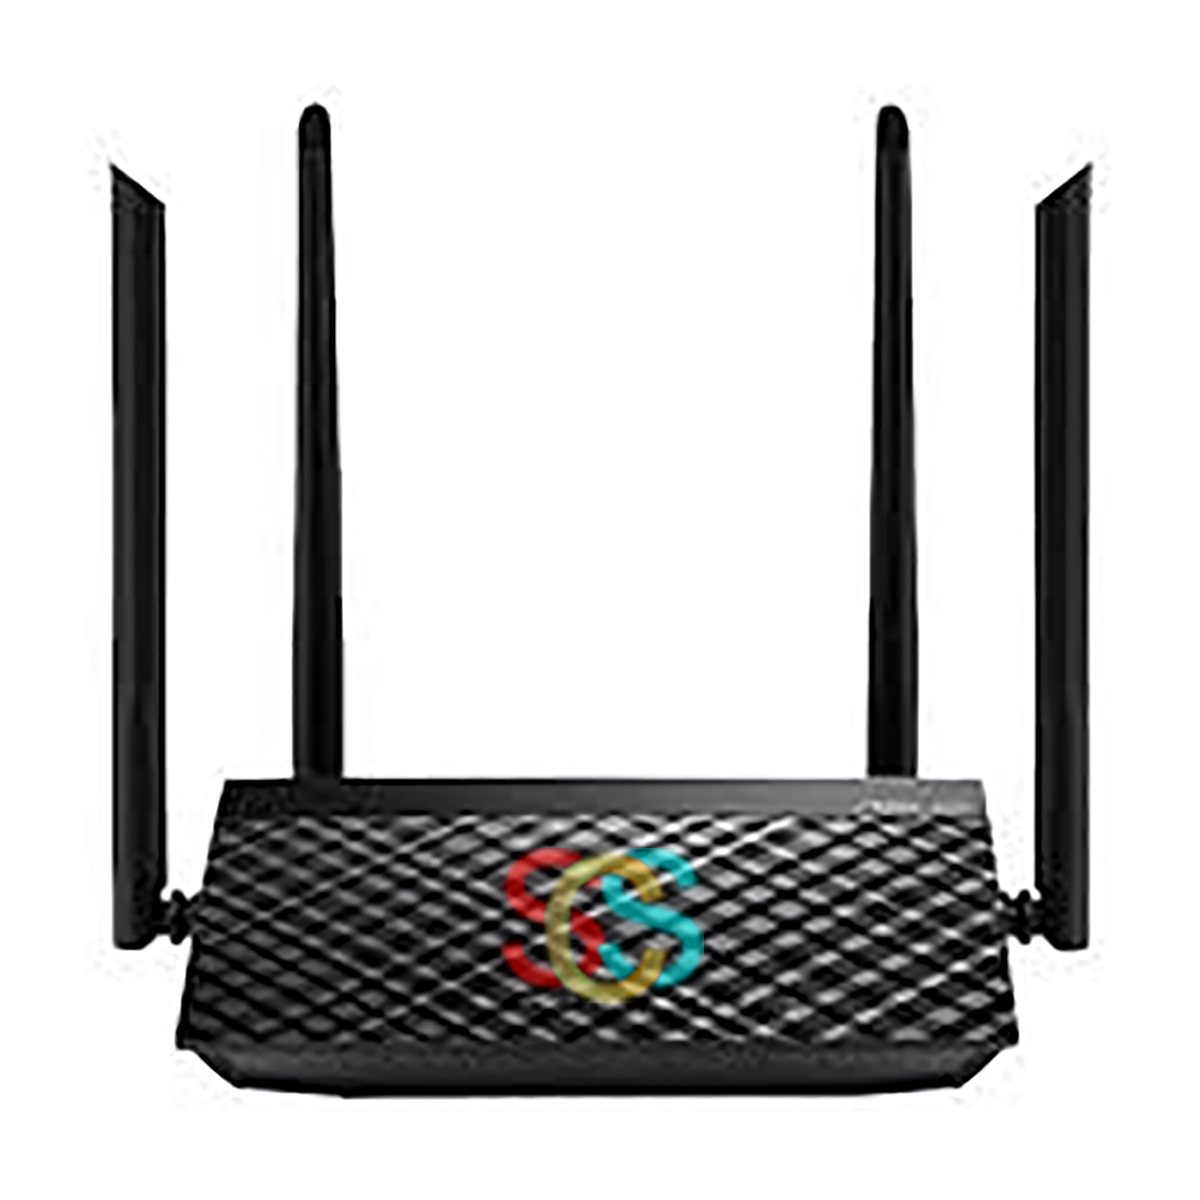 Asus RT-AC750L AC750 Mbps Ethernet Dual-Band Wi-Fi Router